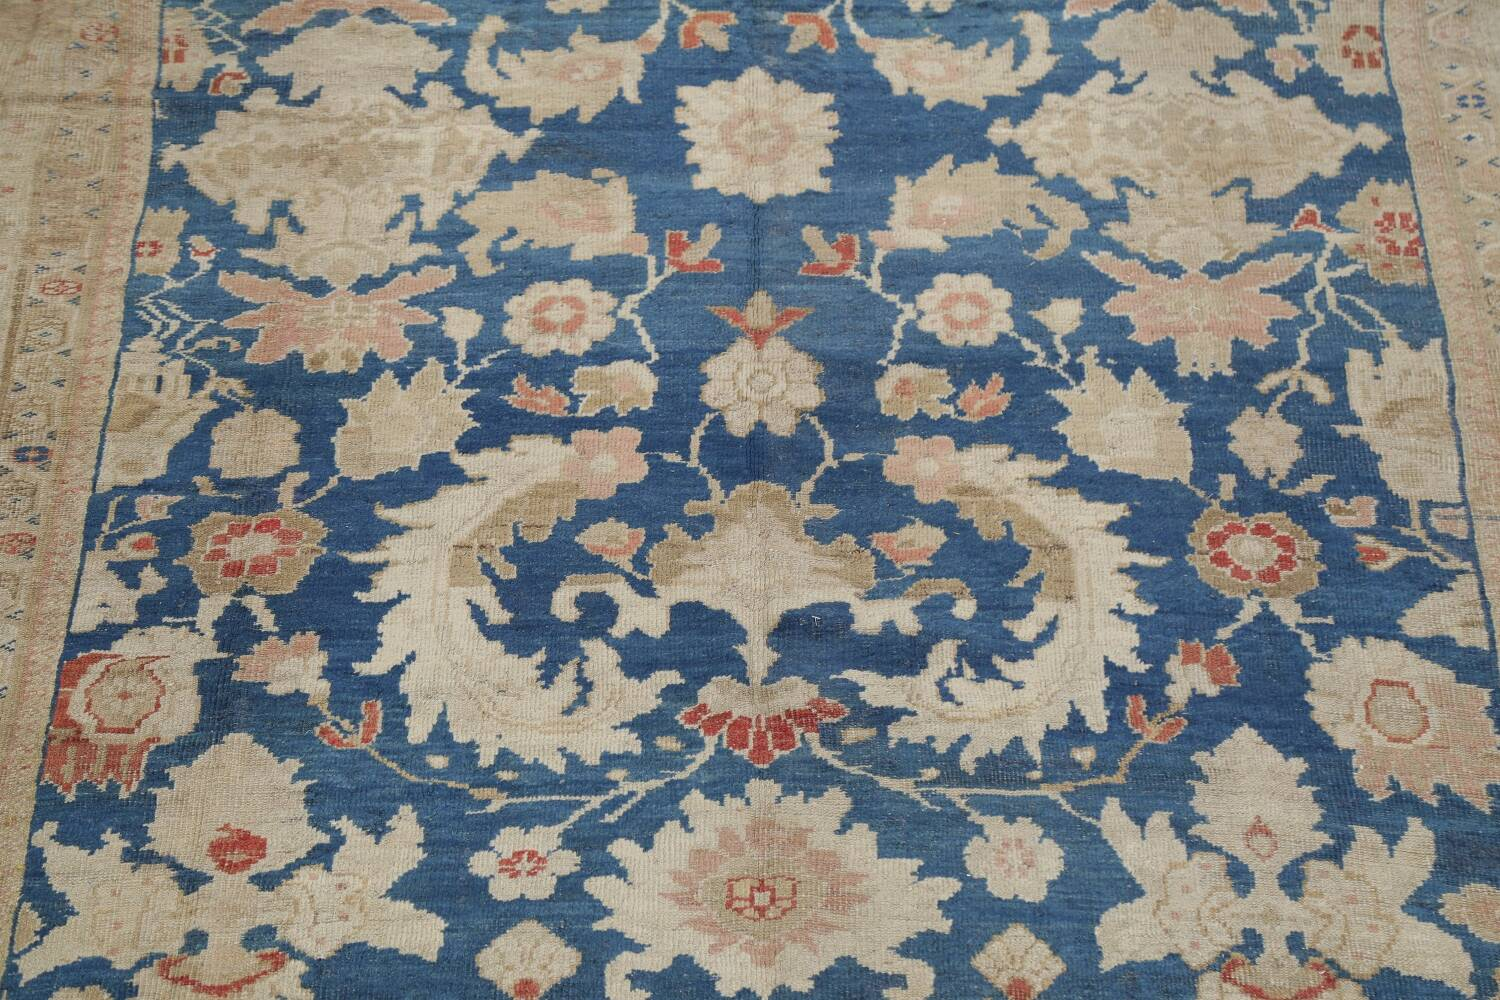 Antique Floral Sultanabad Persian Area Rug 10x16 Large image 4